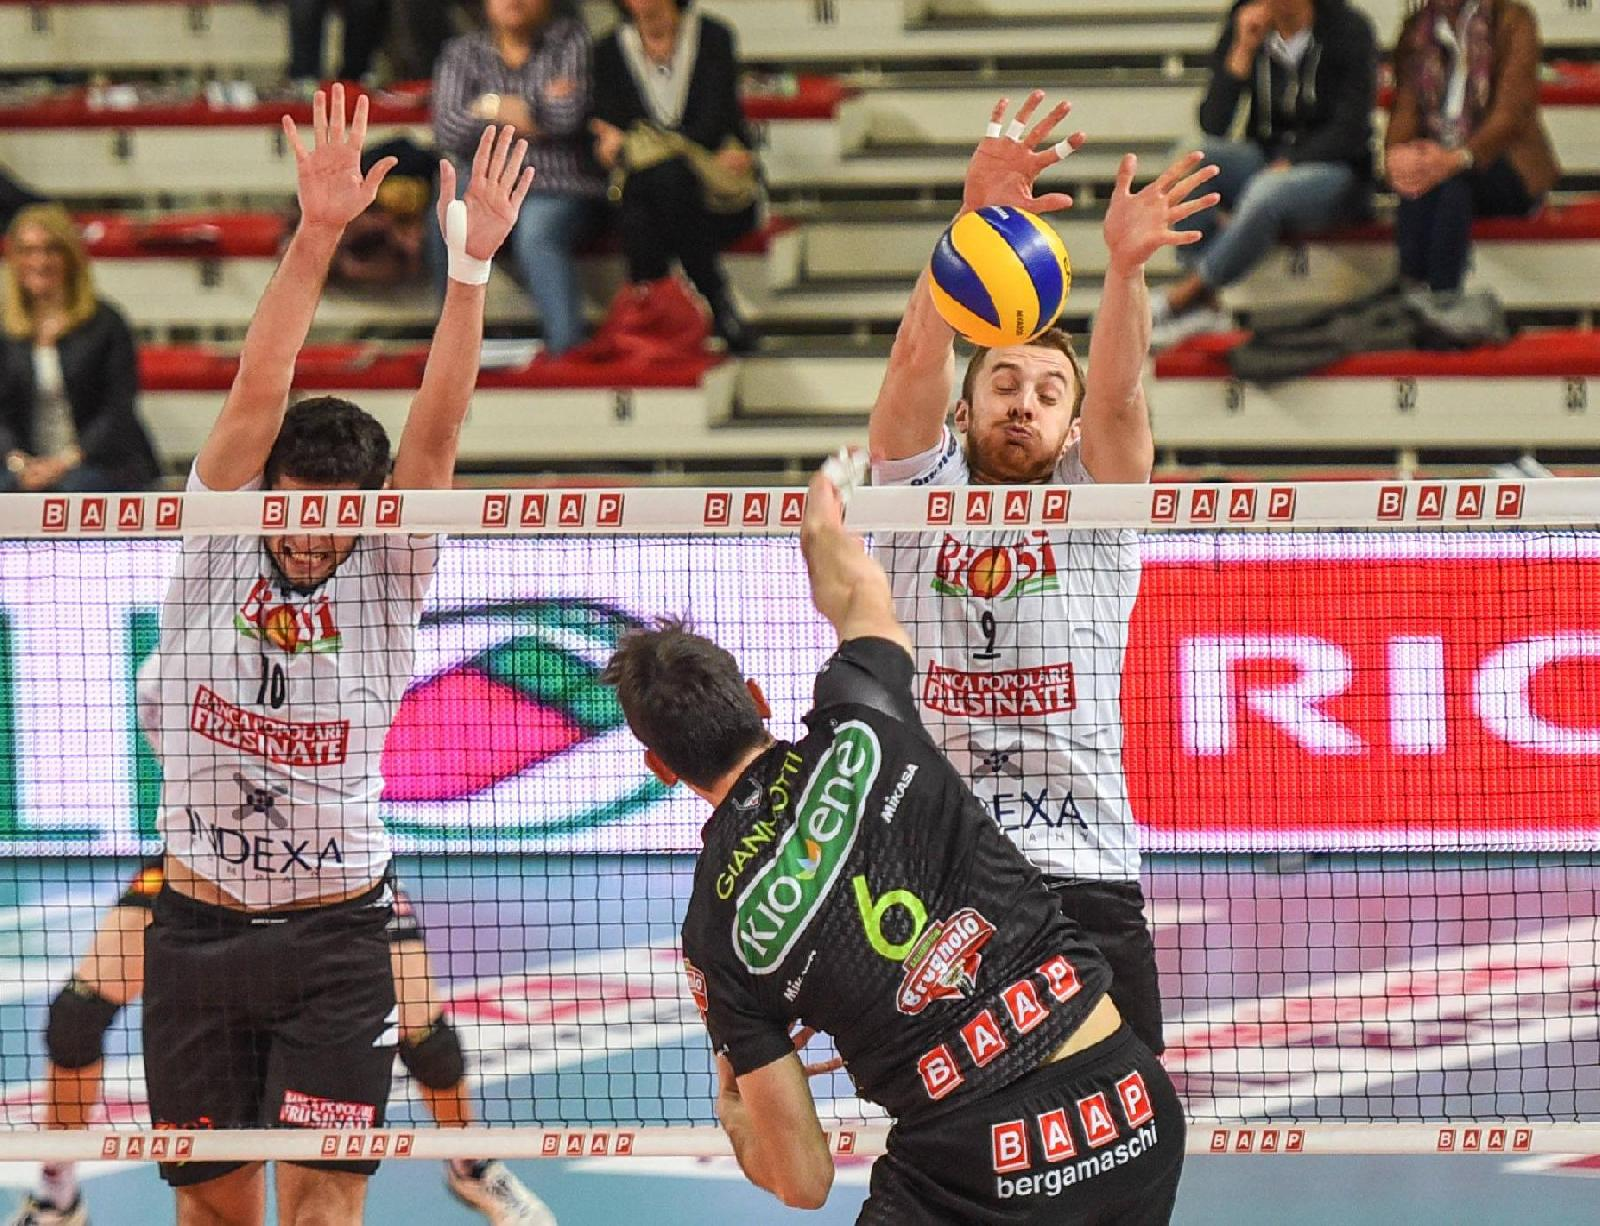 Volley - A Sora nel week-end il quadrangolare